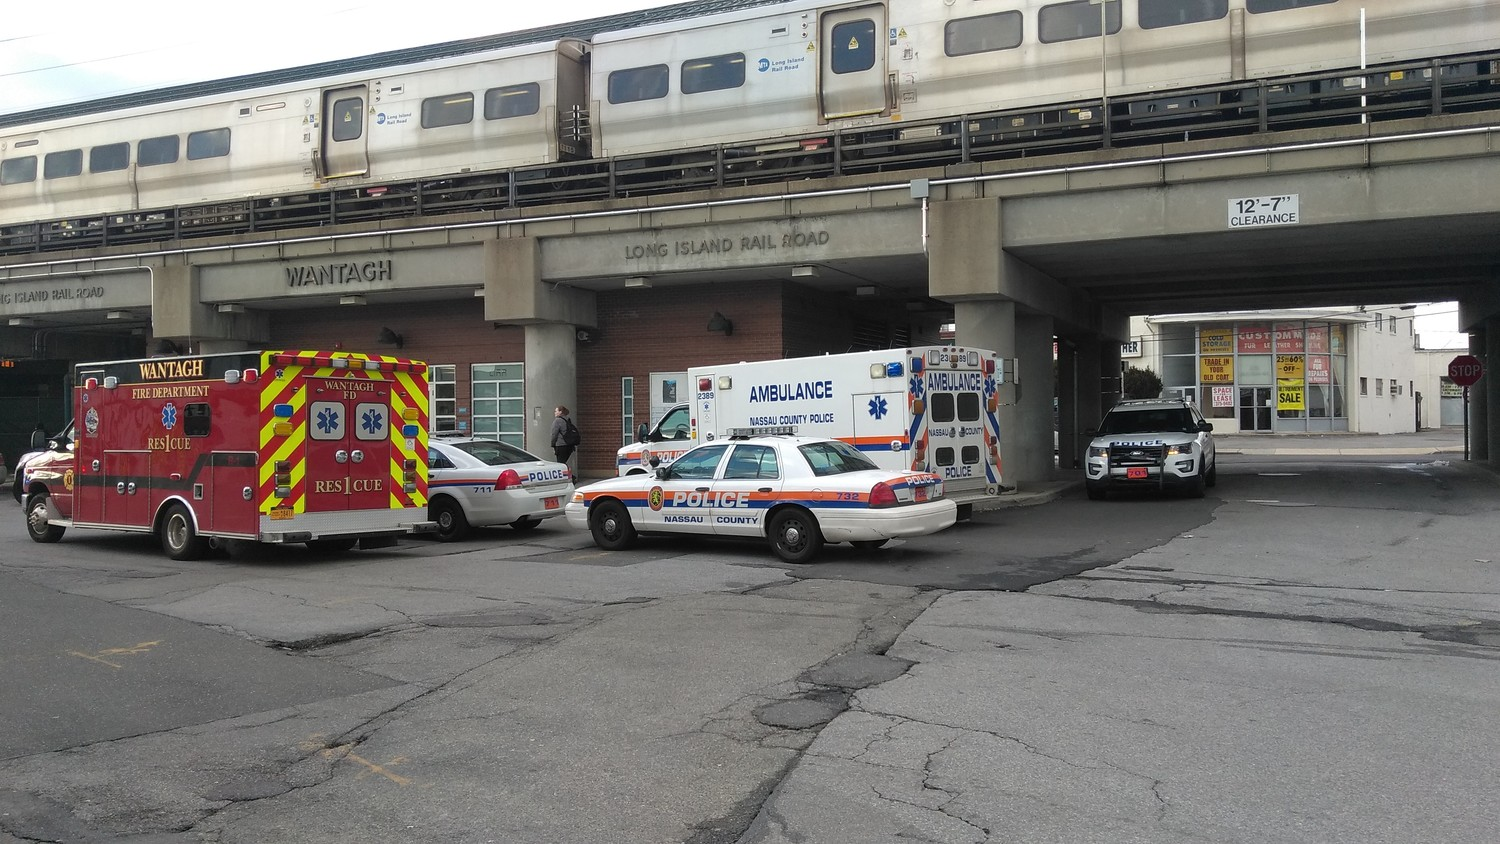 Police and ambulances responded when 11 people were trapped in the newly installed elevator at the Wantagh train station on March 9.